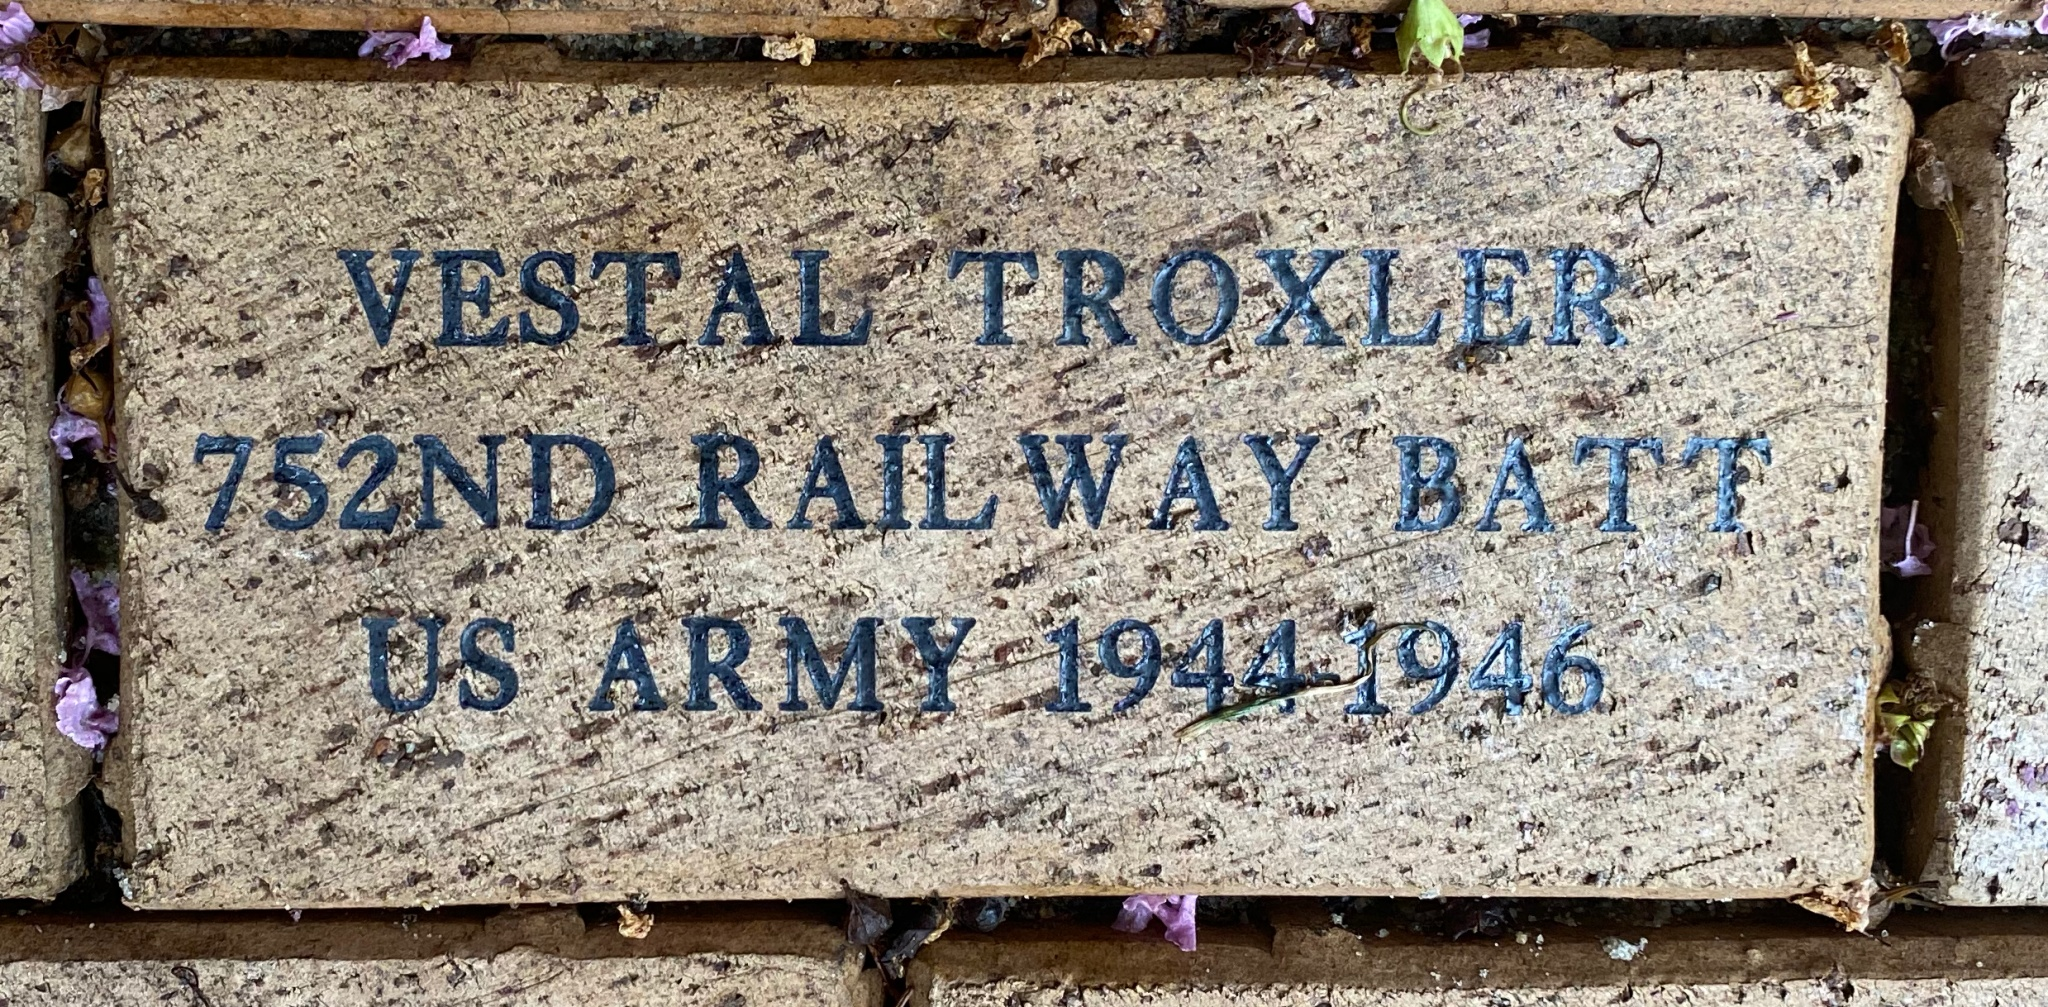 VESTAL TROXLER 752ND RAILWAY BATT. US ARMY 1944-1946